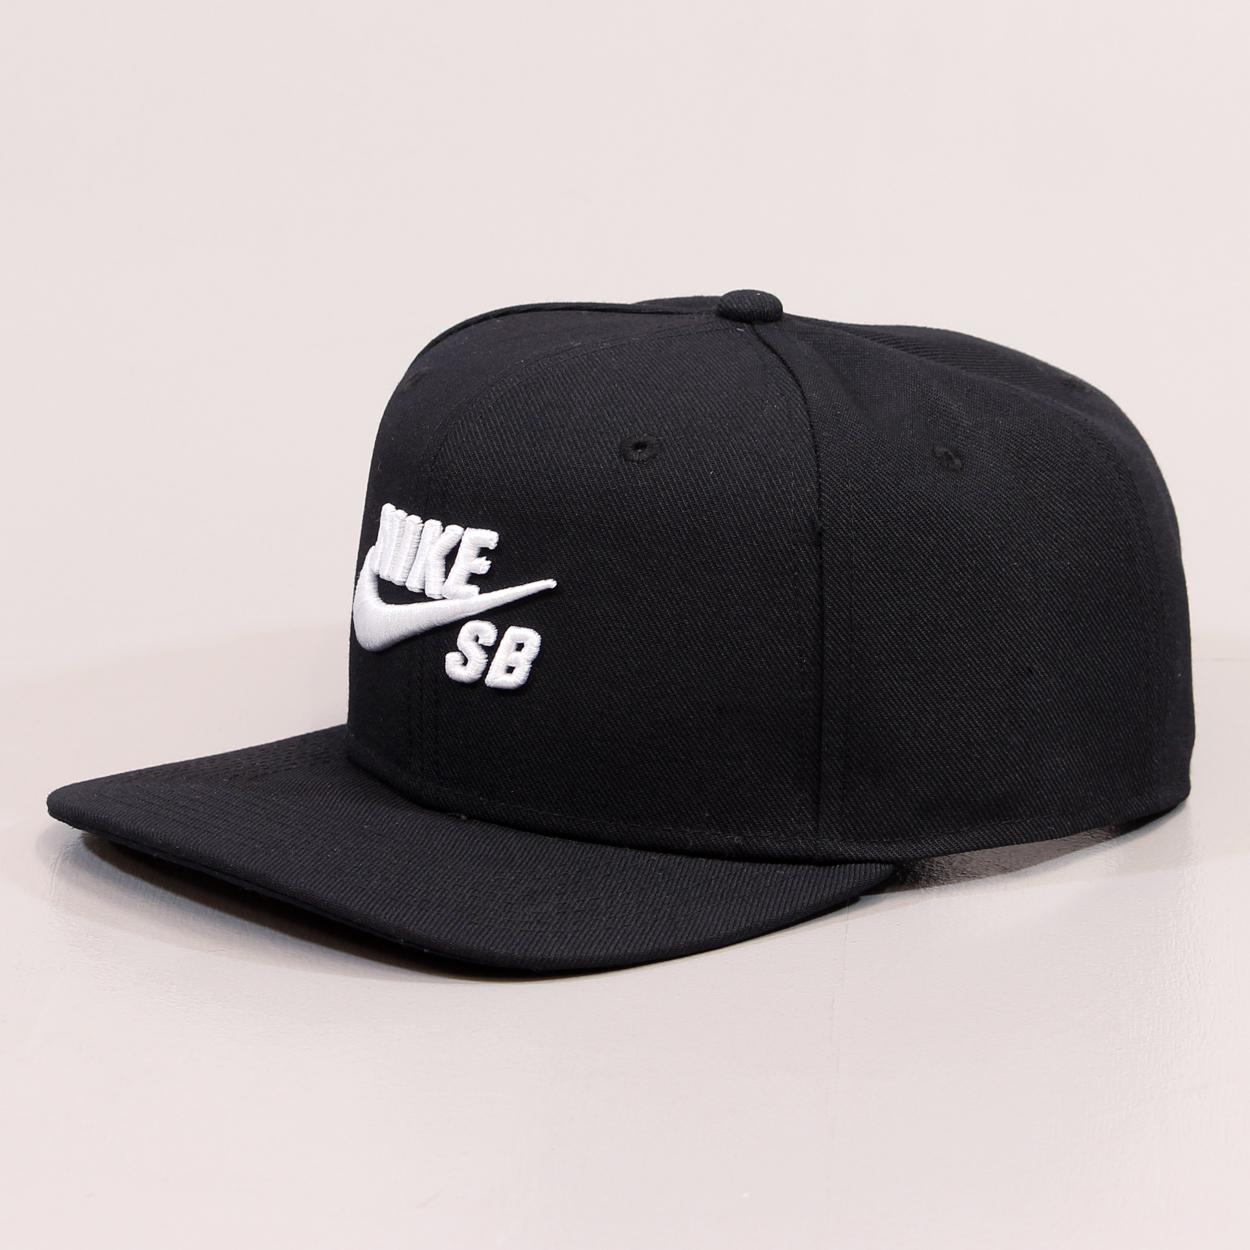 undefeated x outlet reputable site Nike SB Skateboarding Icon Pro Snapback Hat Cap Black White ...